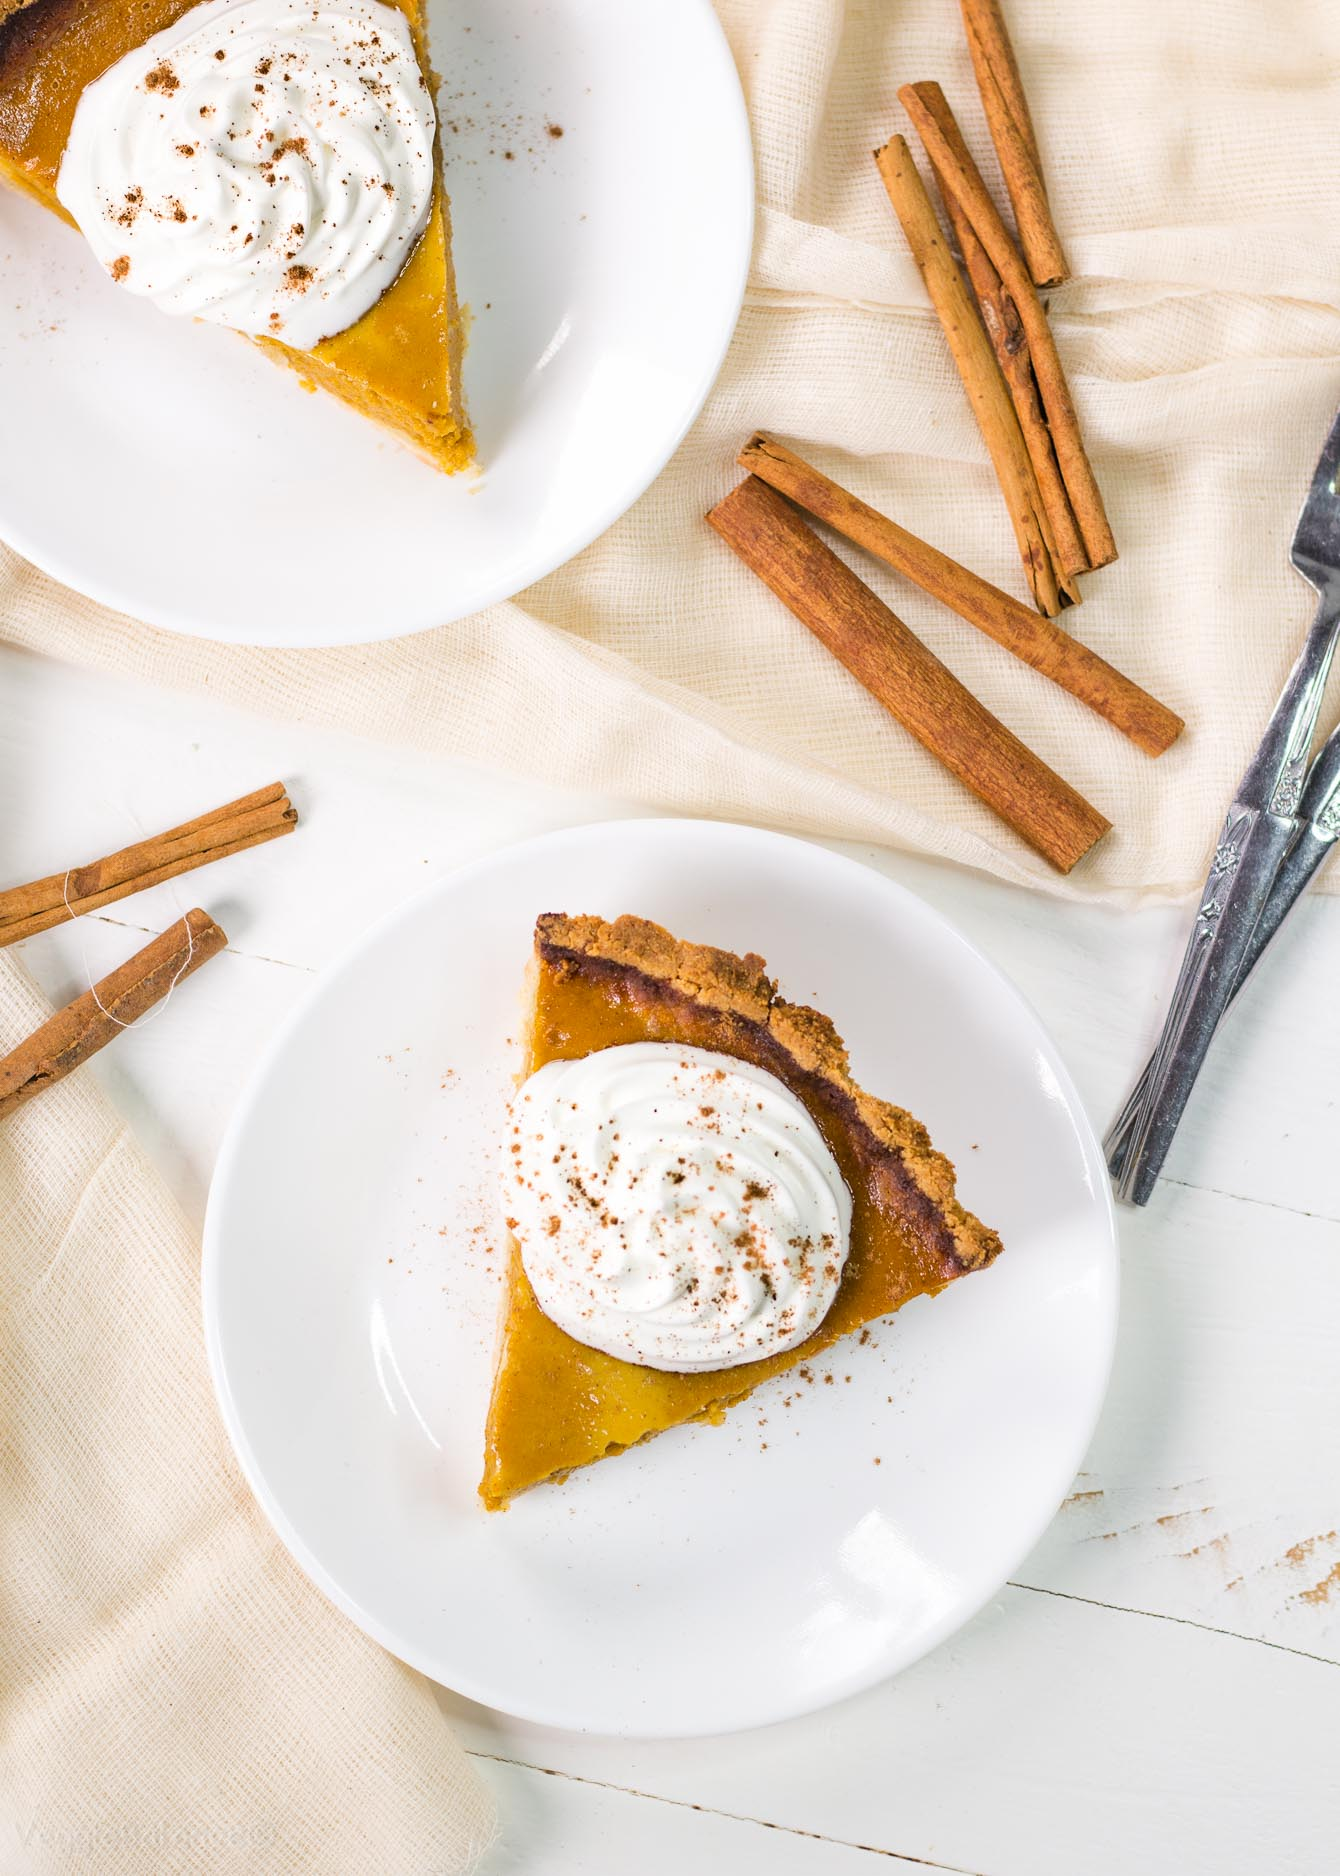 Healthy Gluten-Free Pumpkin Pie recipe